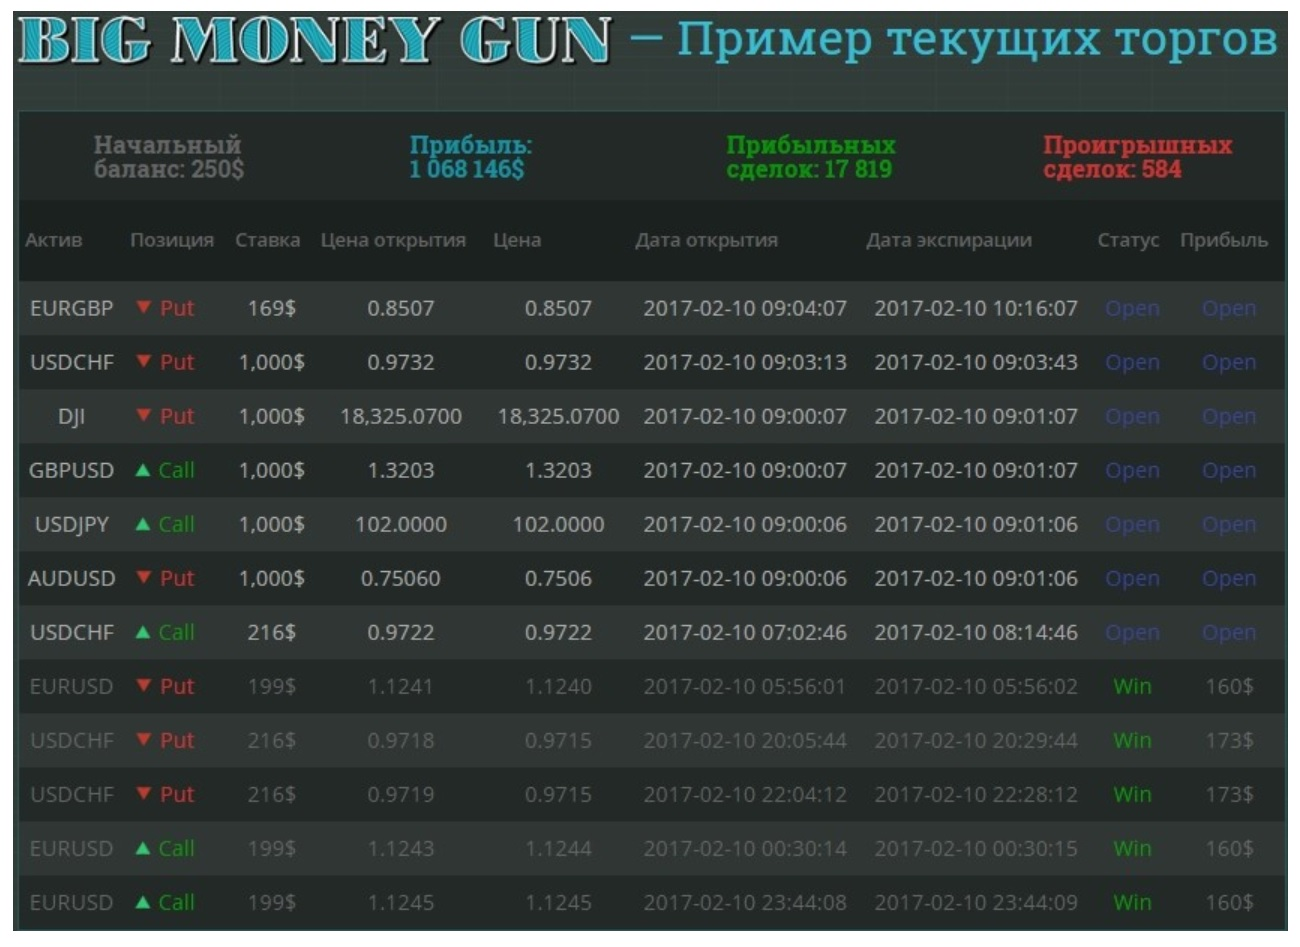 Big Money Gun 2.0 отзывы